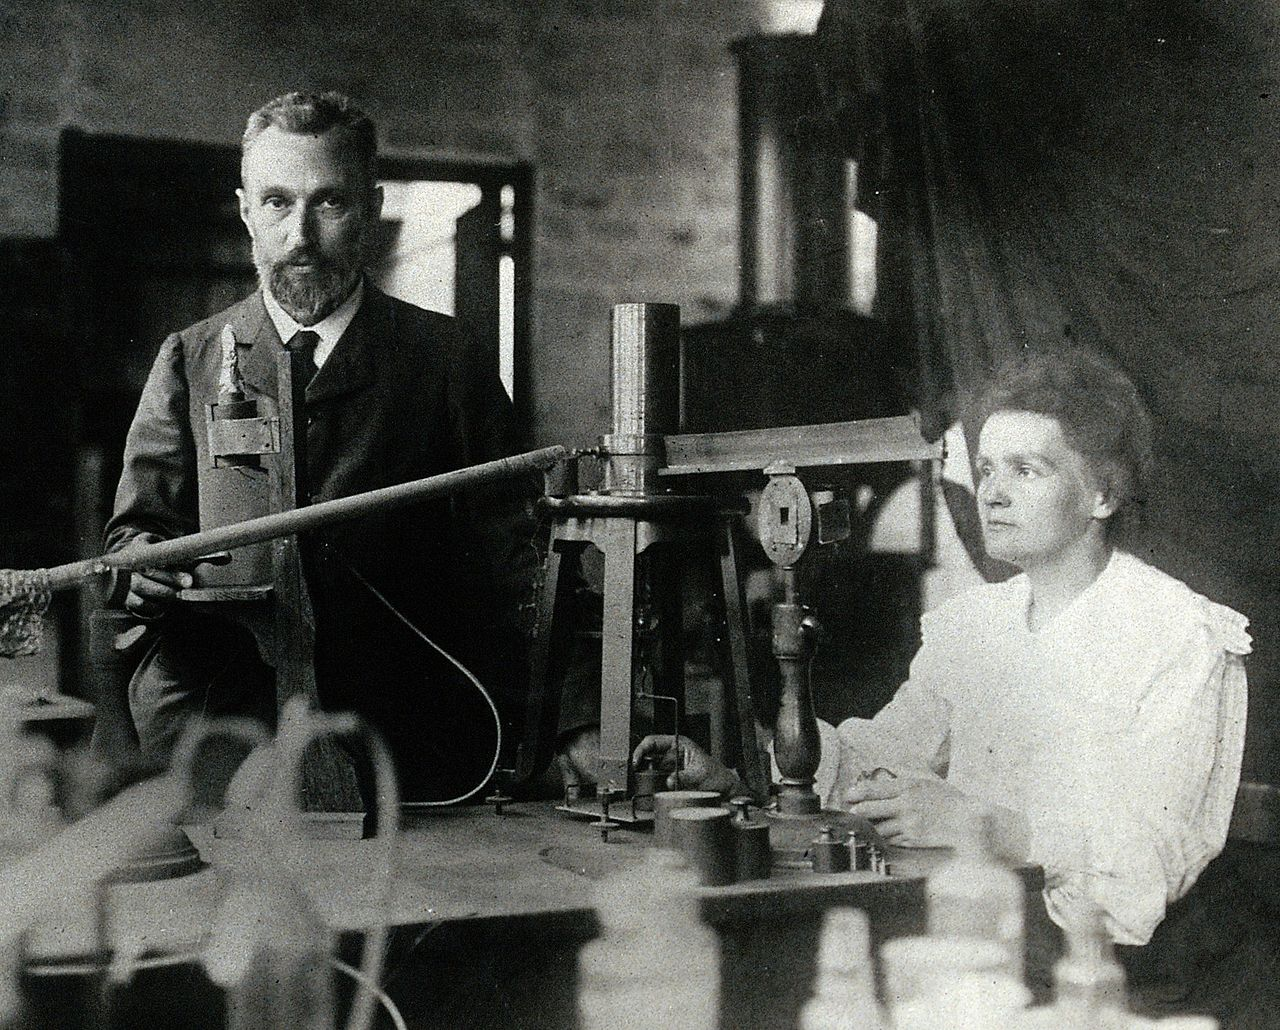 Marie Curie and her husband, Pierre Curie in the year 1904